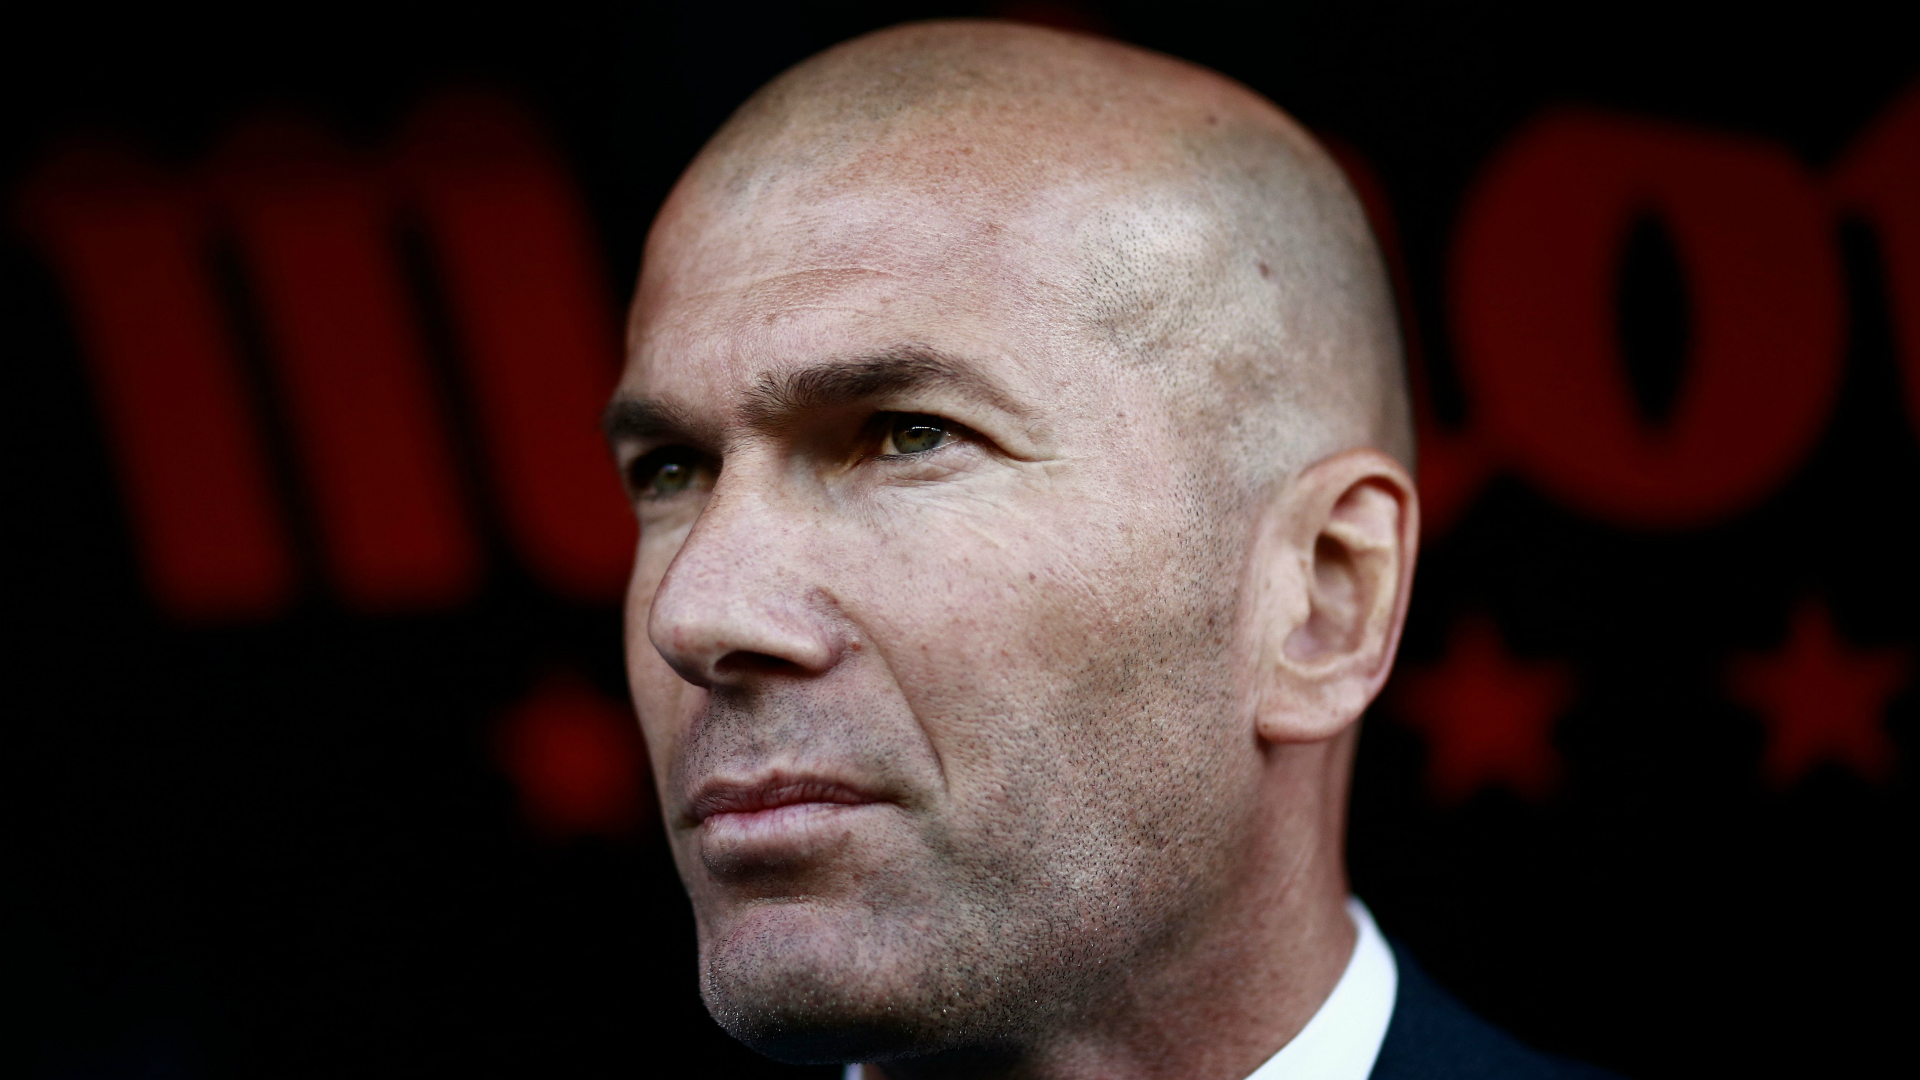 Zidane absent from Real Madrid training camp due to personal reasons